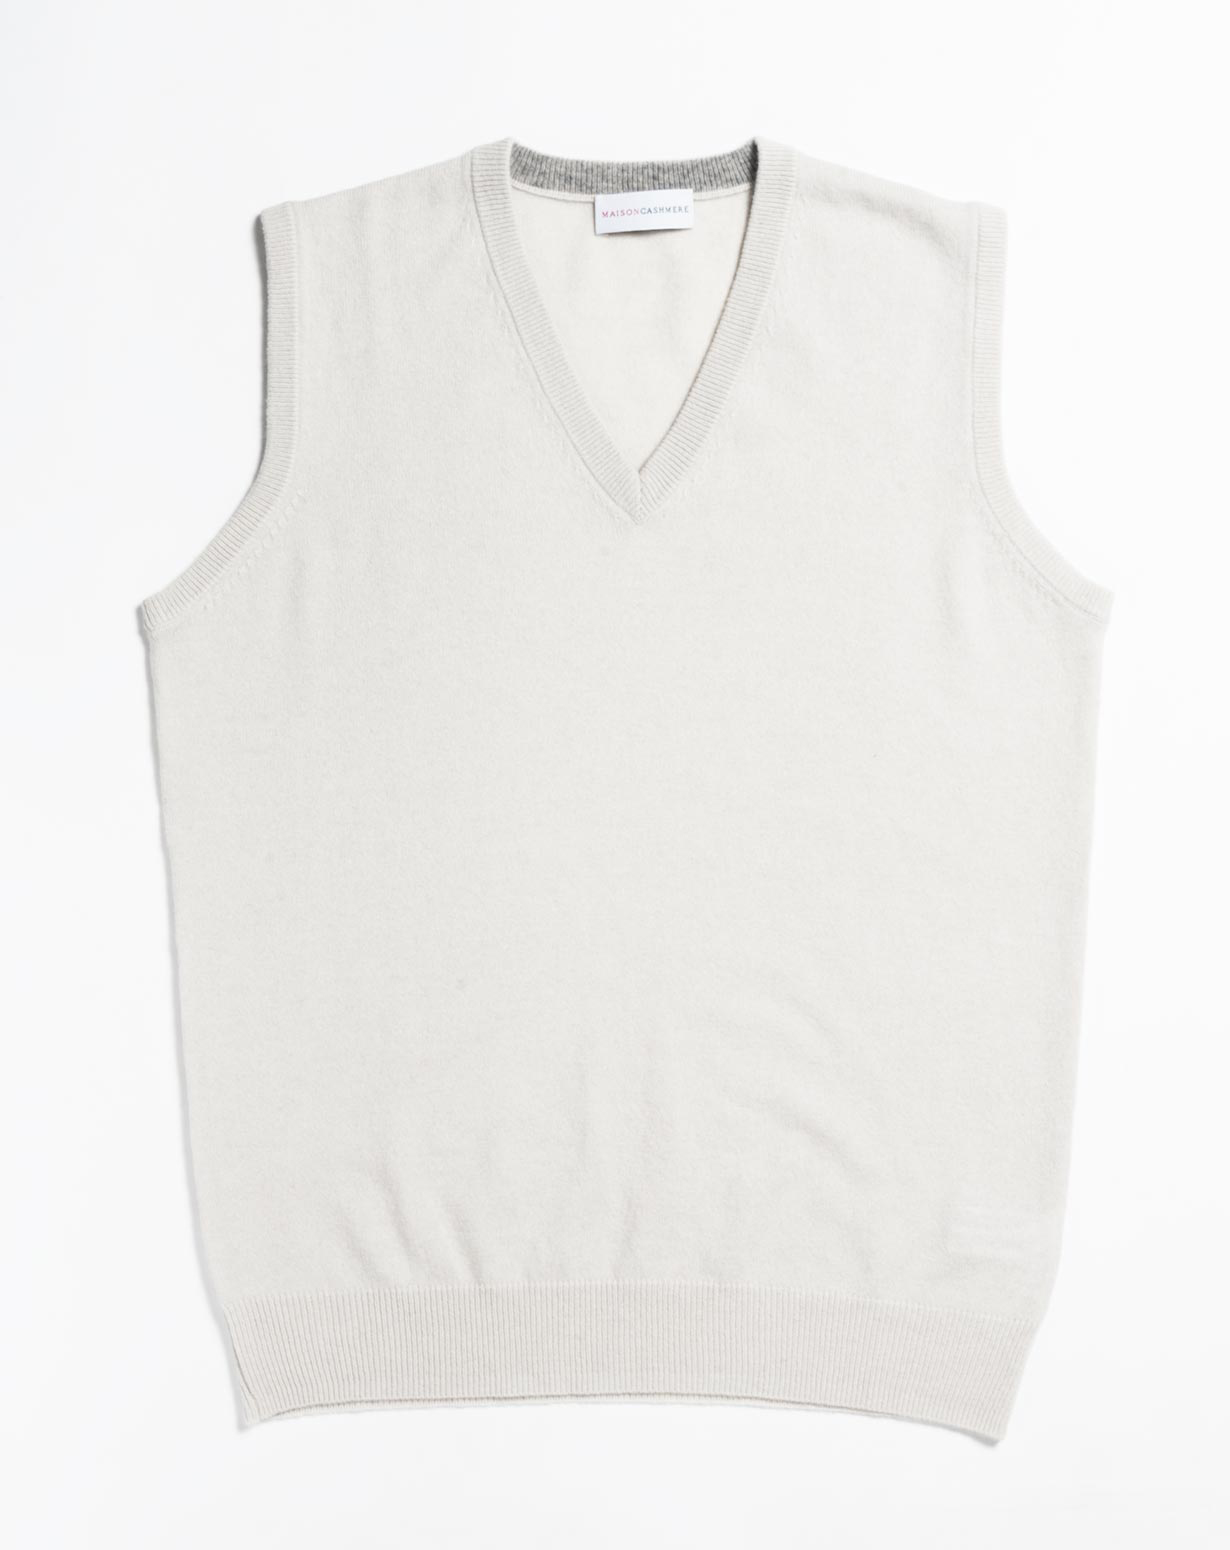 Collection Mens White Sweater Vest Pictures - Best Fashion Trends ...